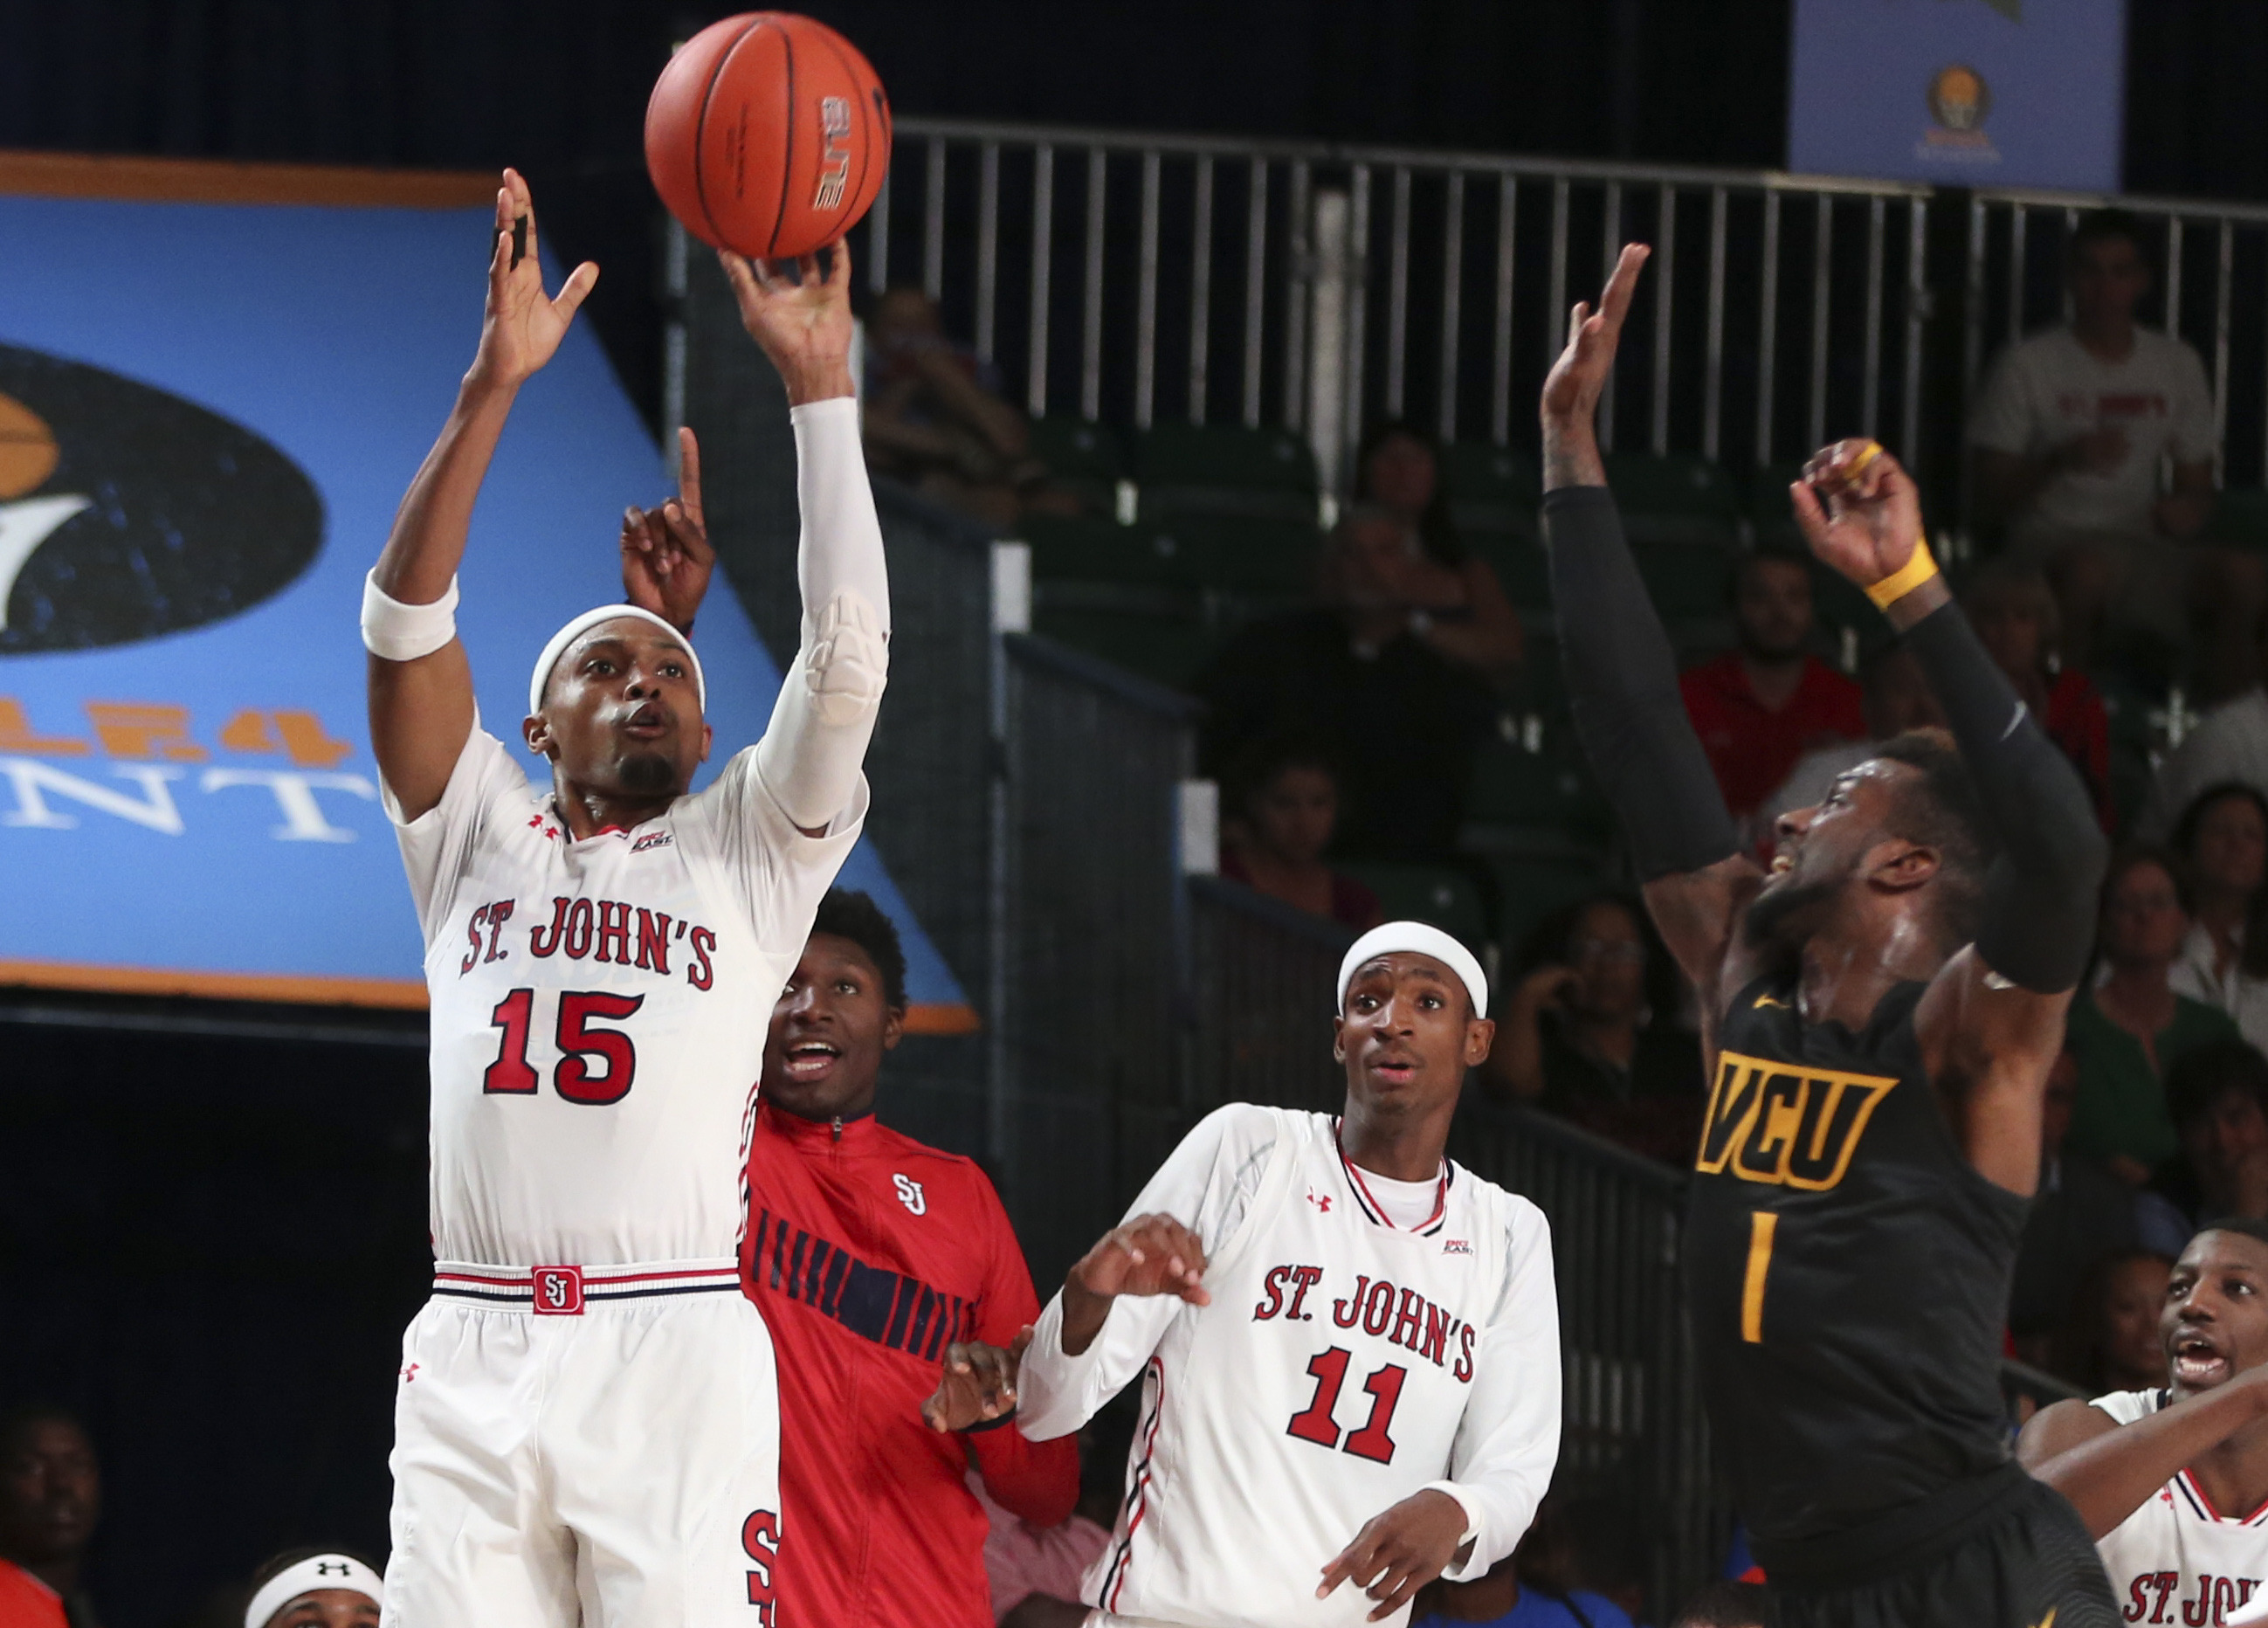 Bashir Ahmed scored 13 points for the Red Storm against VCU on Thursday evening